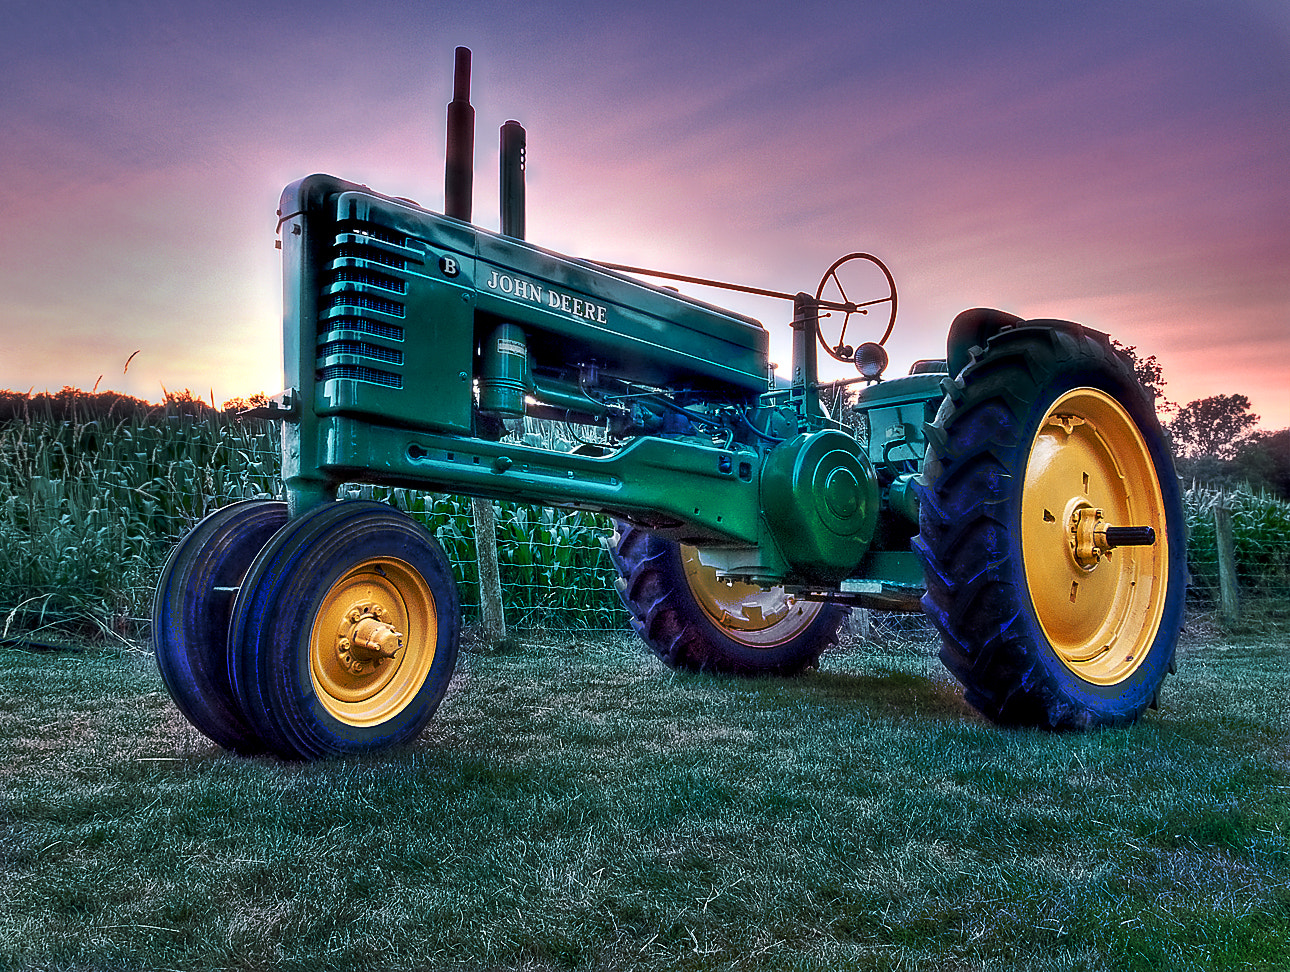 Photograph John Deere by Kevin Pepper on 500px